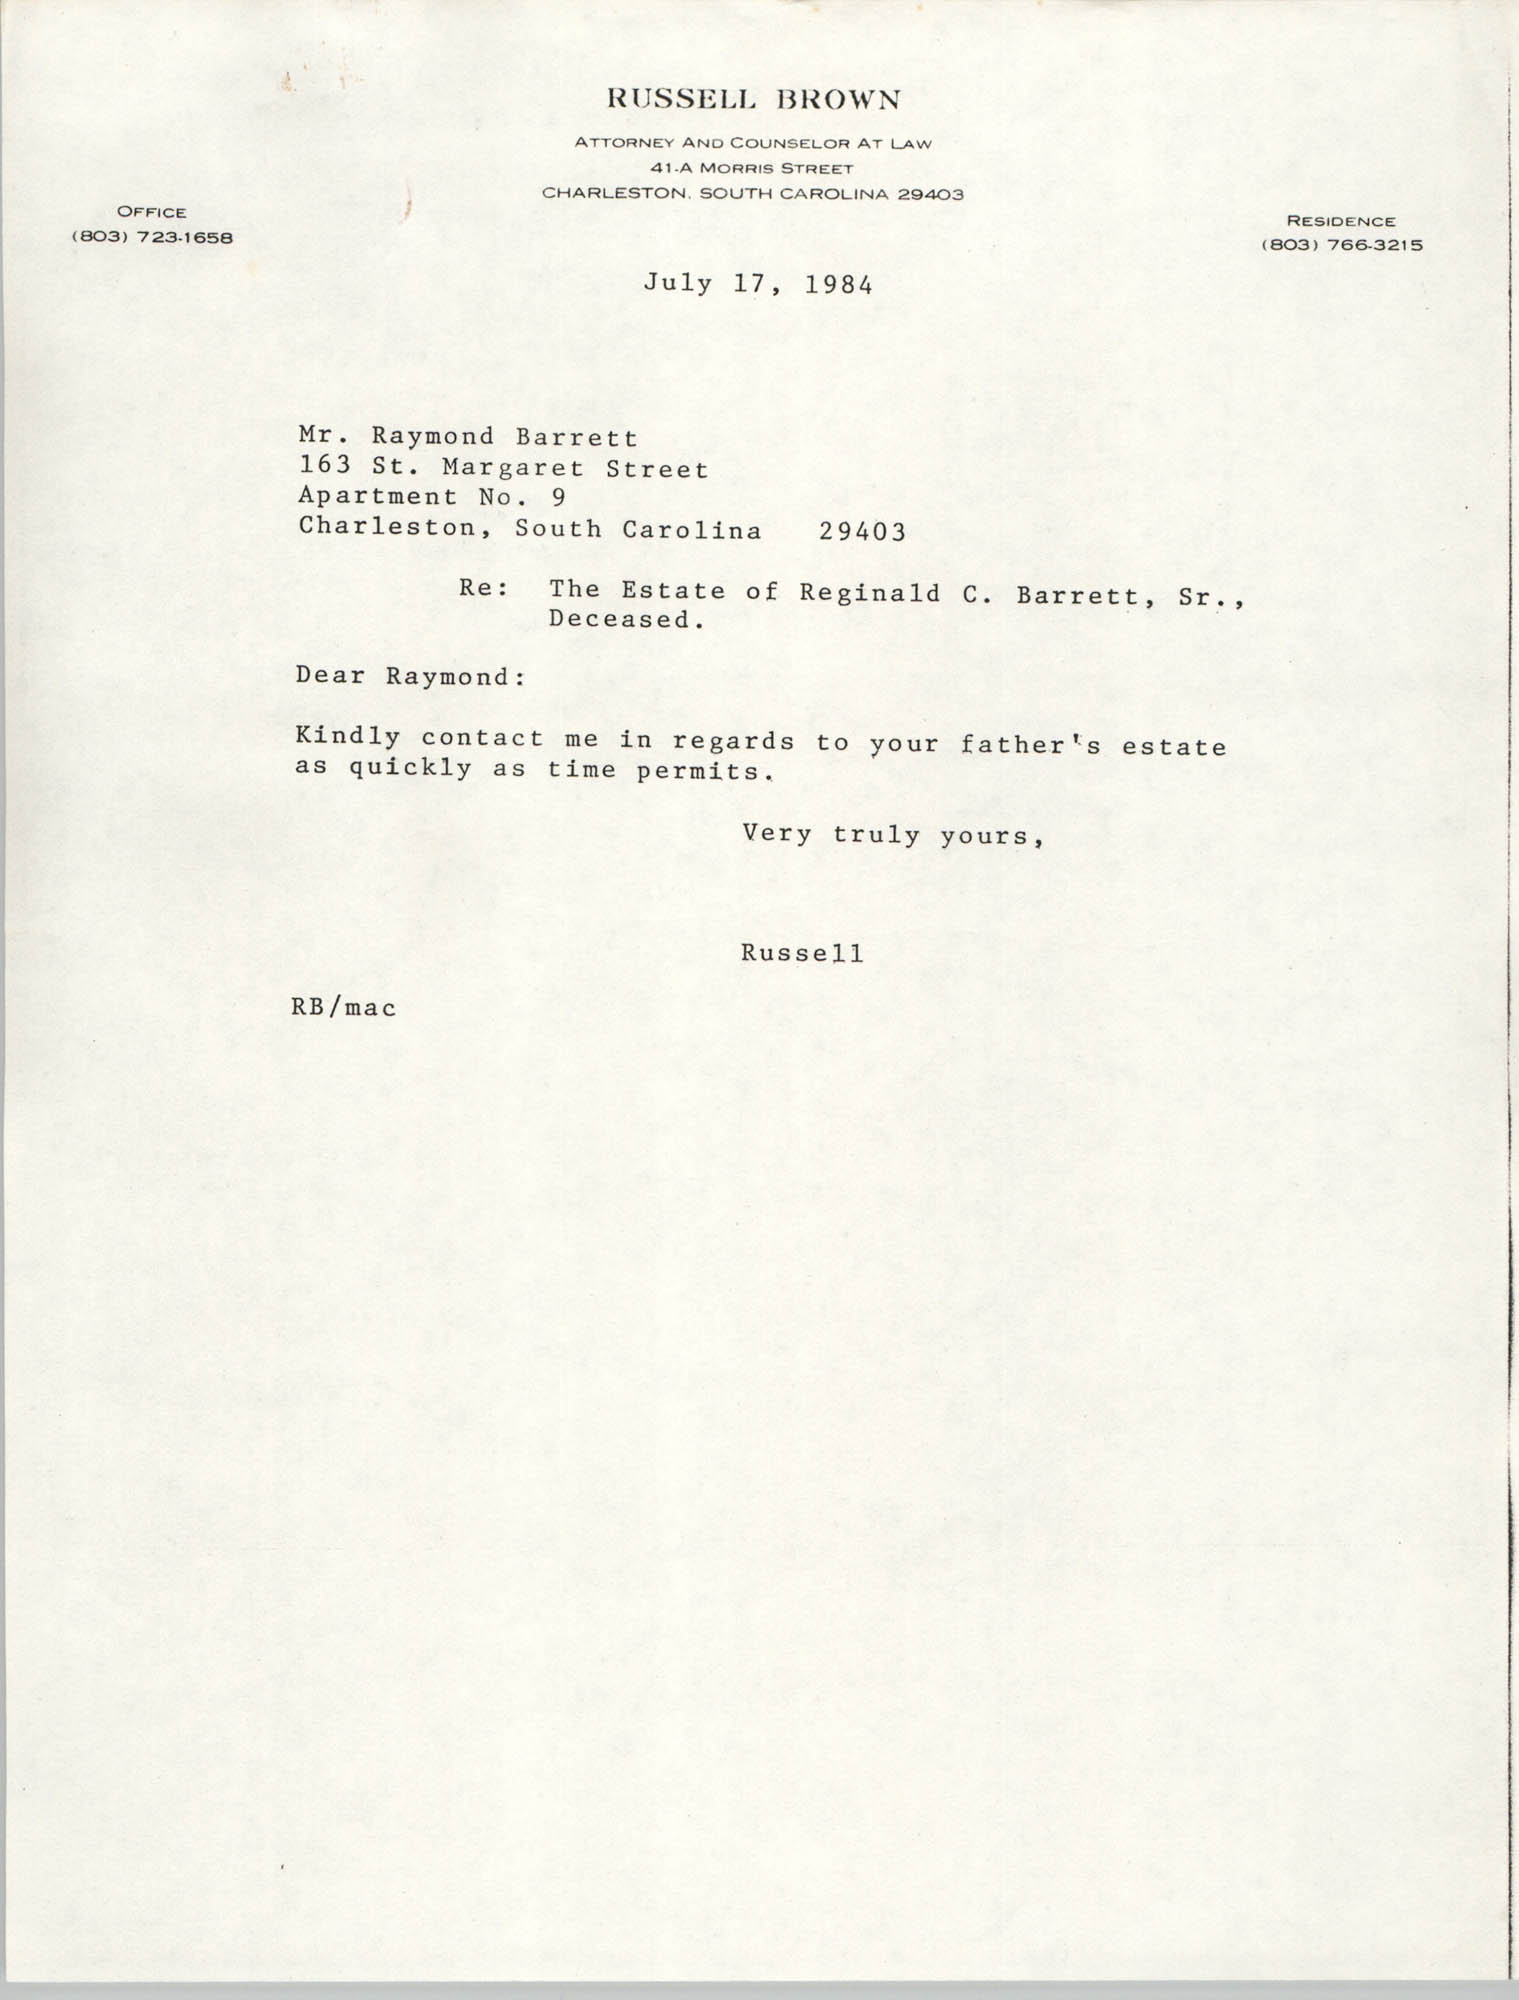 Letter from Russell Brown to Raymond W. Barrett, July 17, 1984